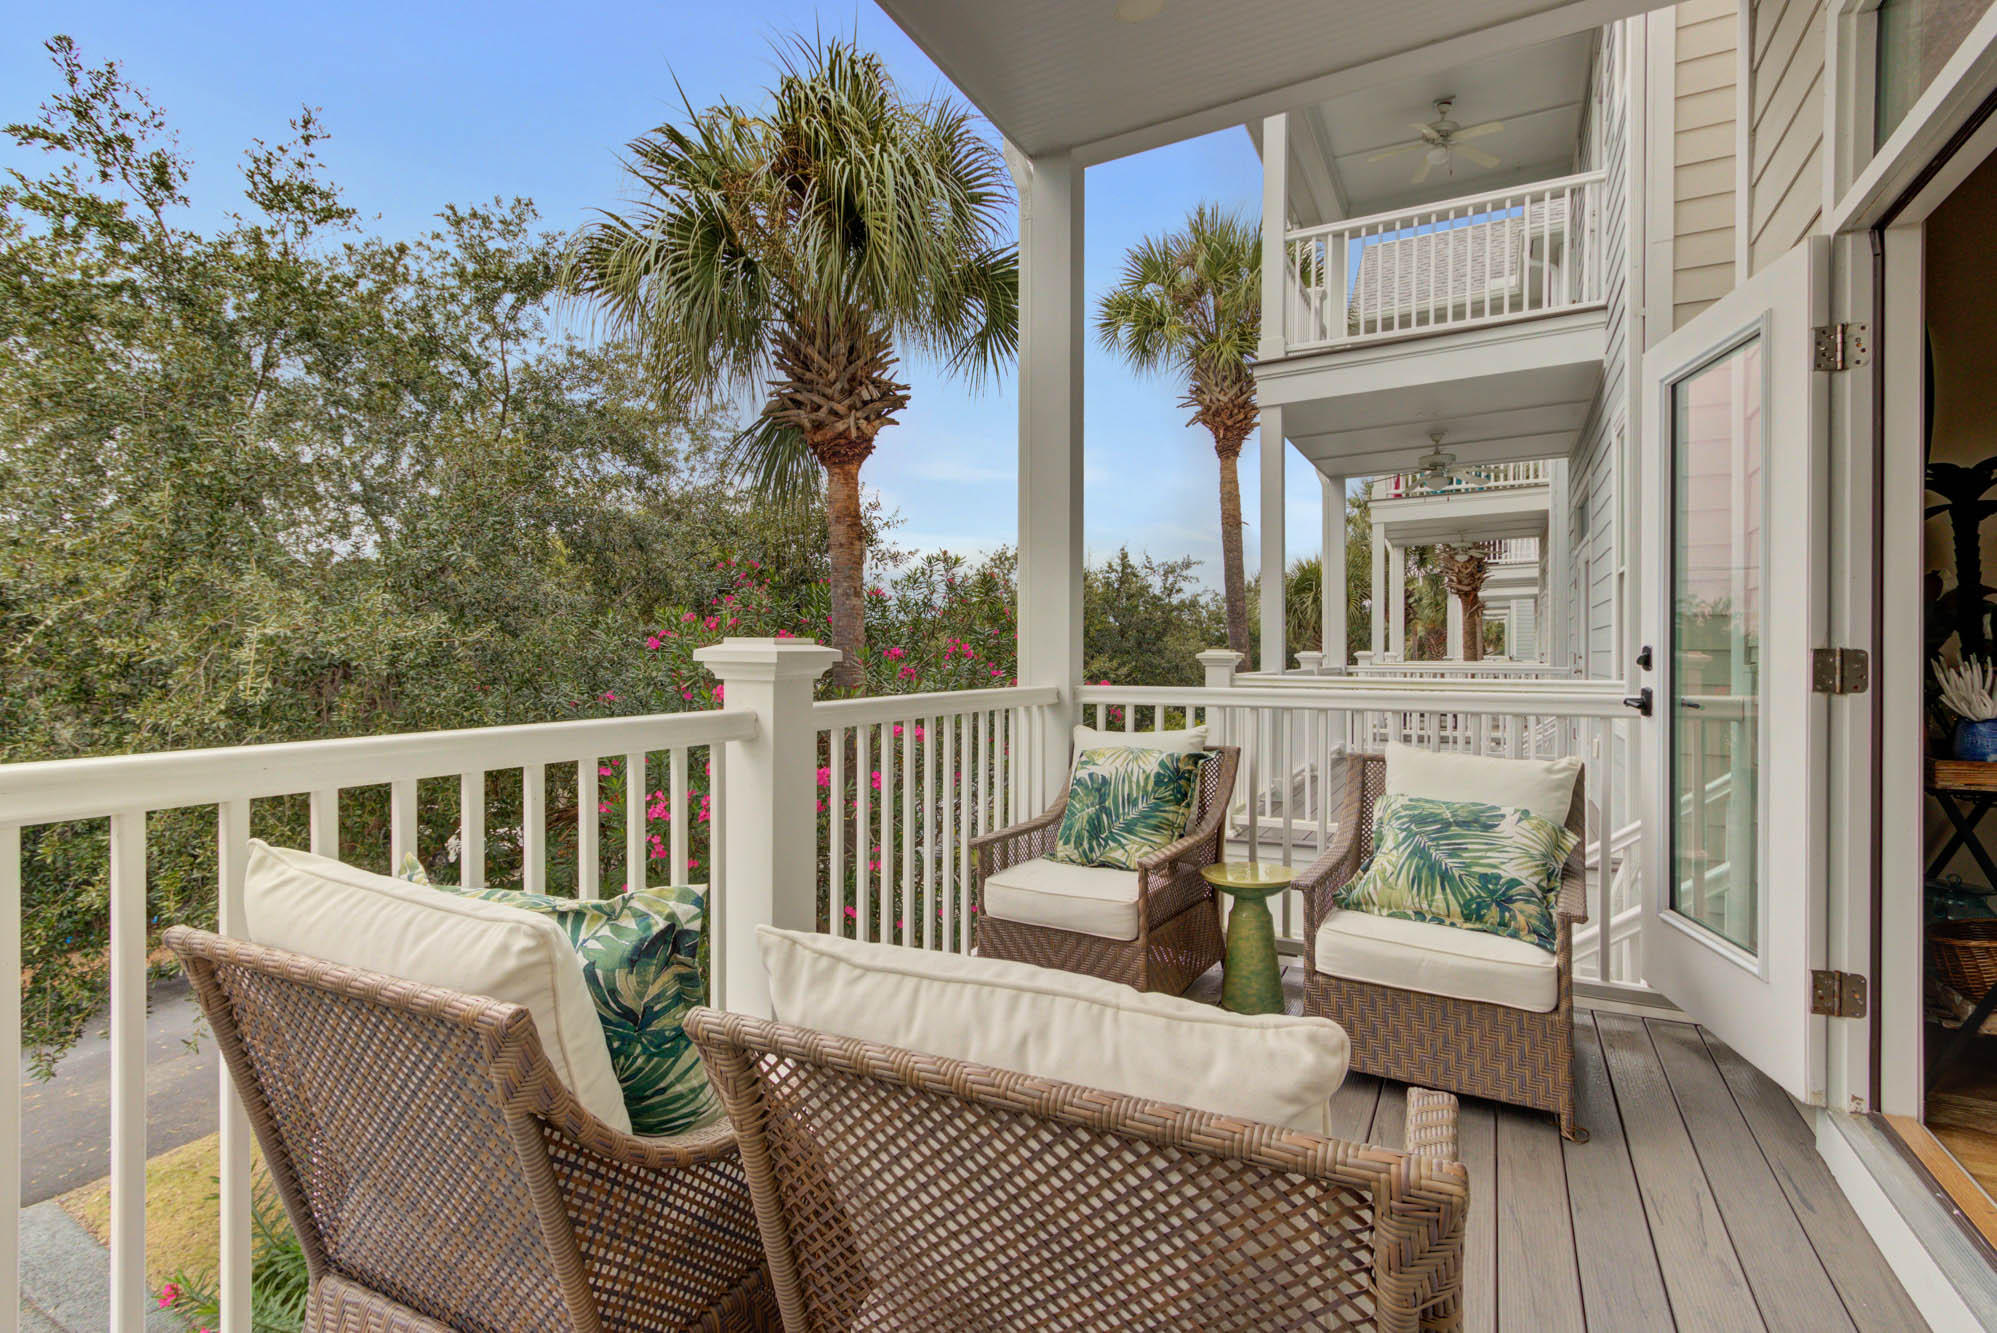 Folly Creek Place Homes For Sale - 2240 Folly, Folly Beach, SC - 31